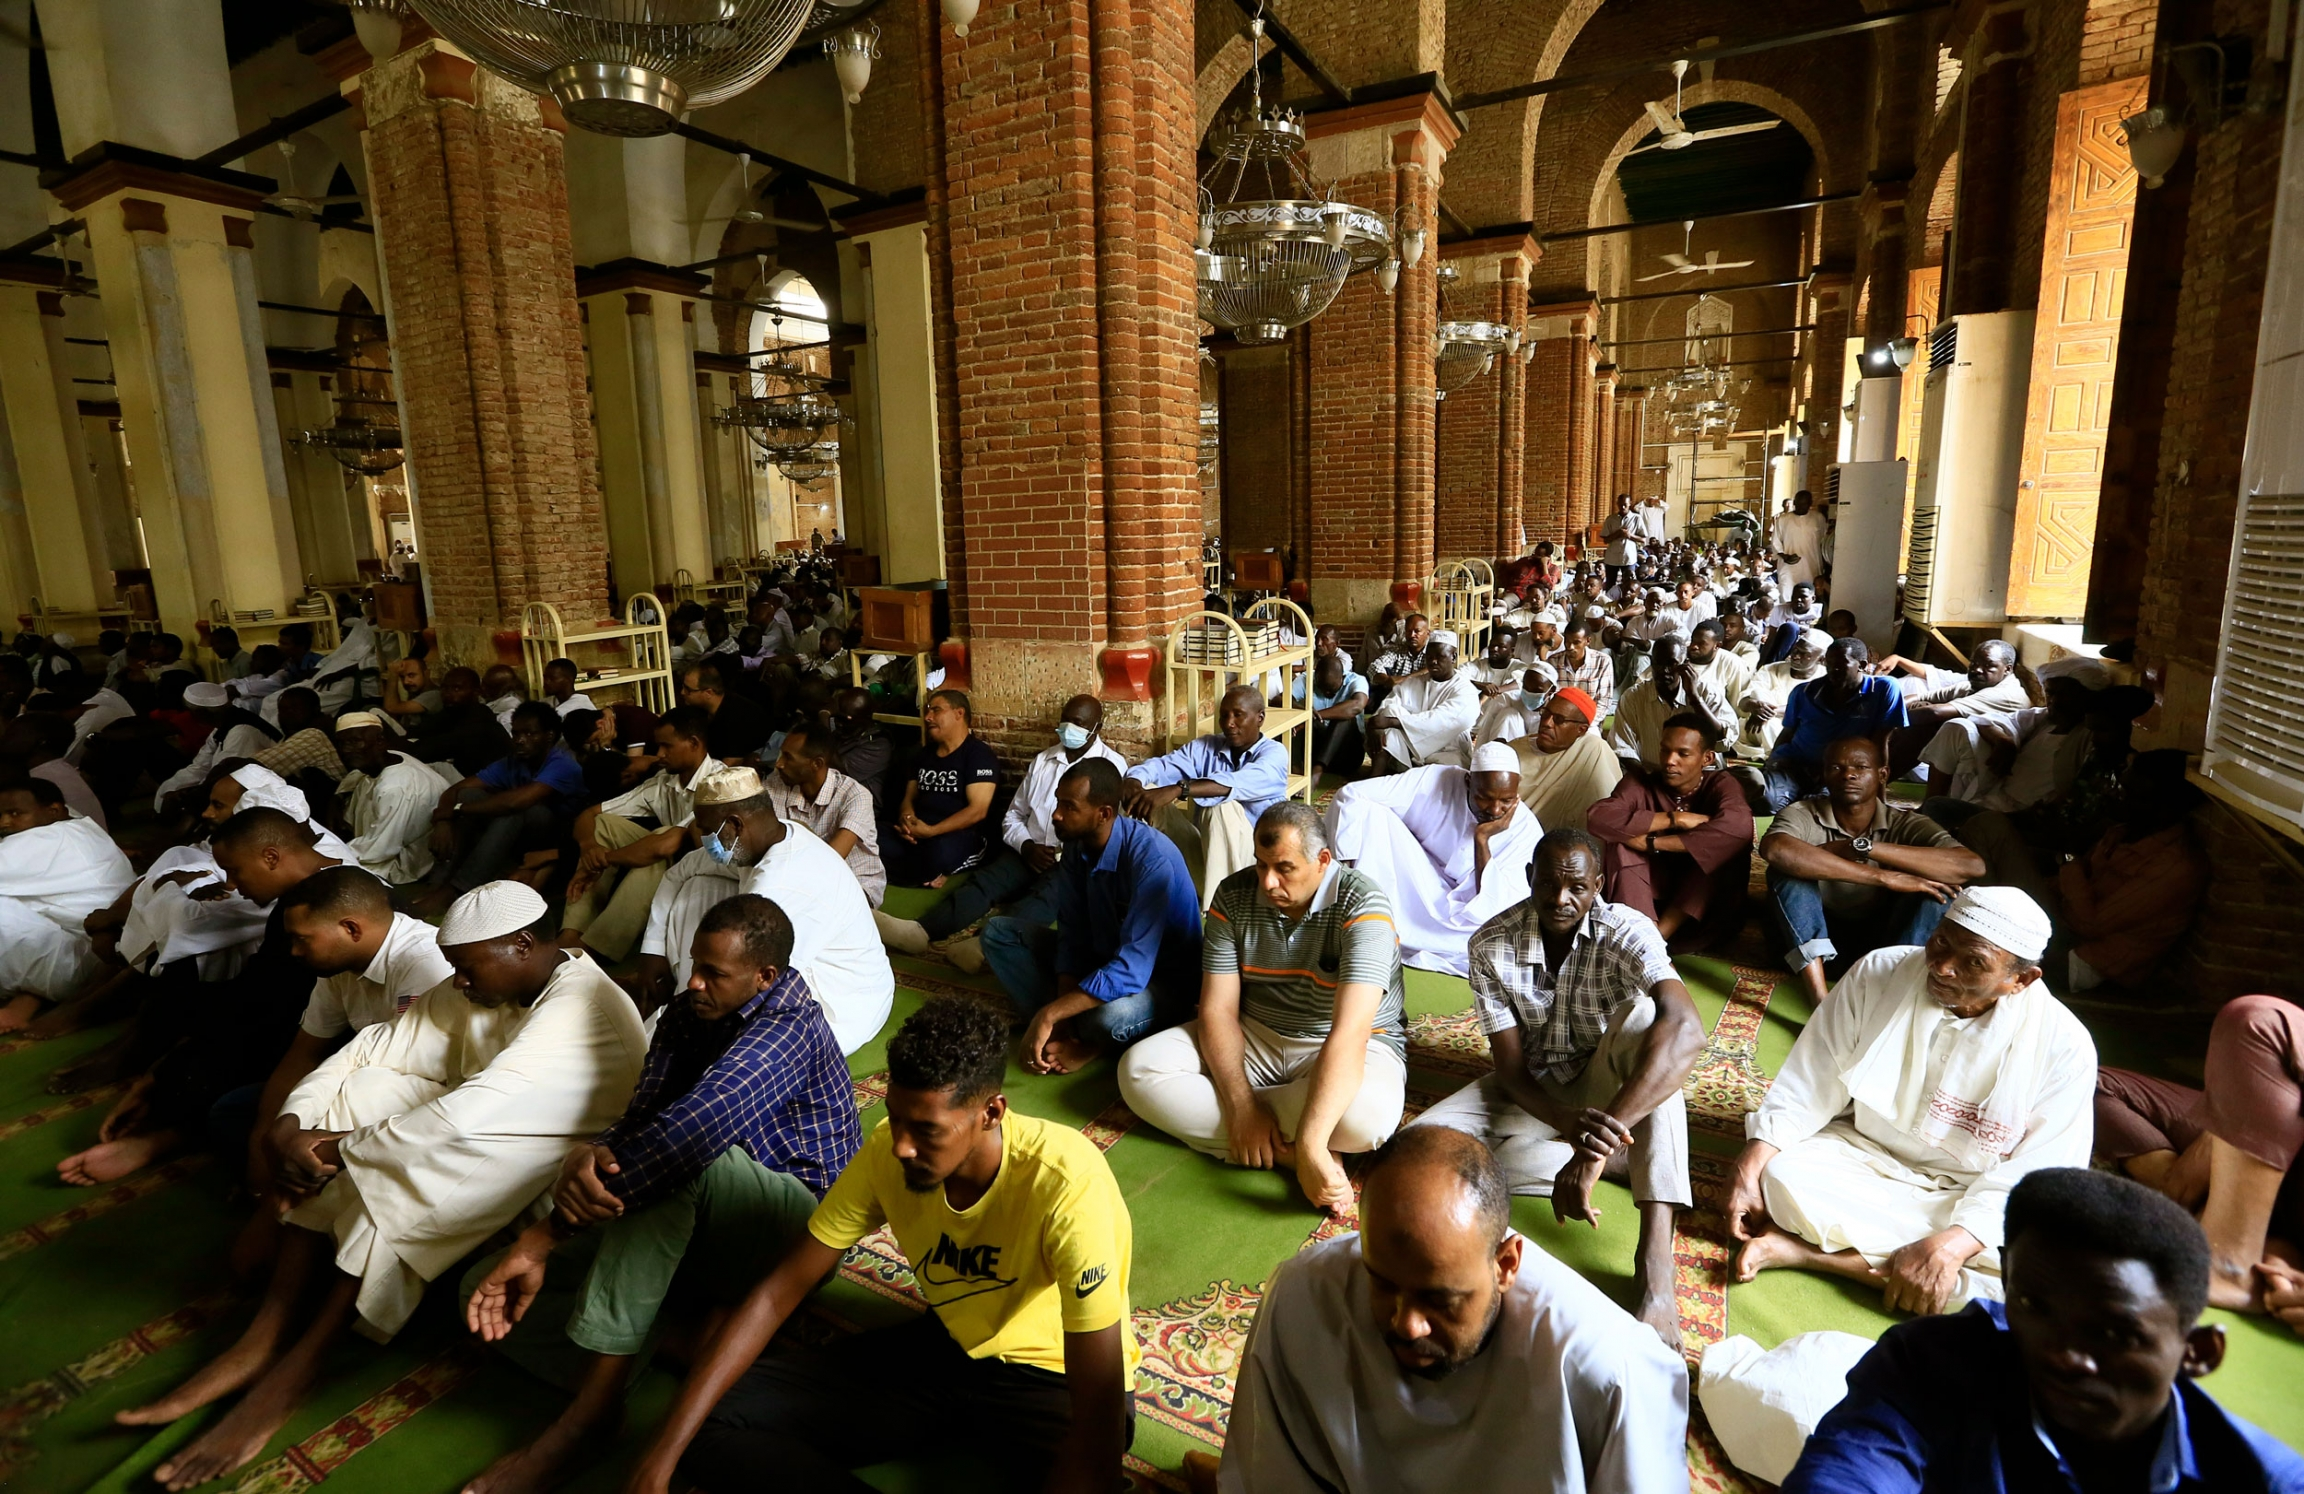 A large group of people are show sitting on the floor of the Grand Mosque with large brick columns down the middle.